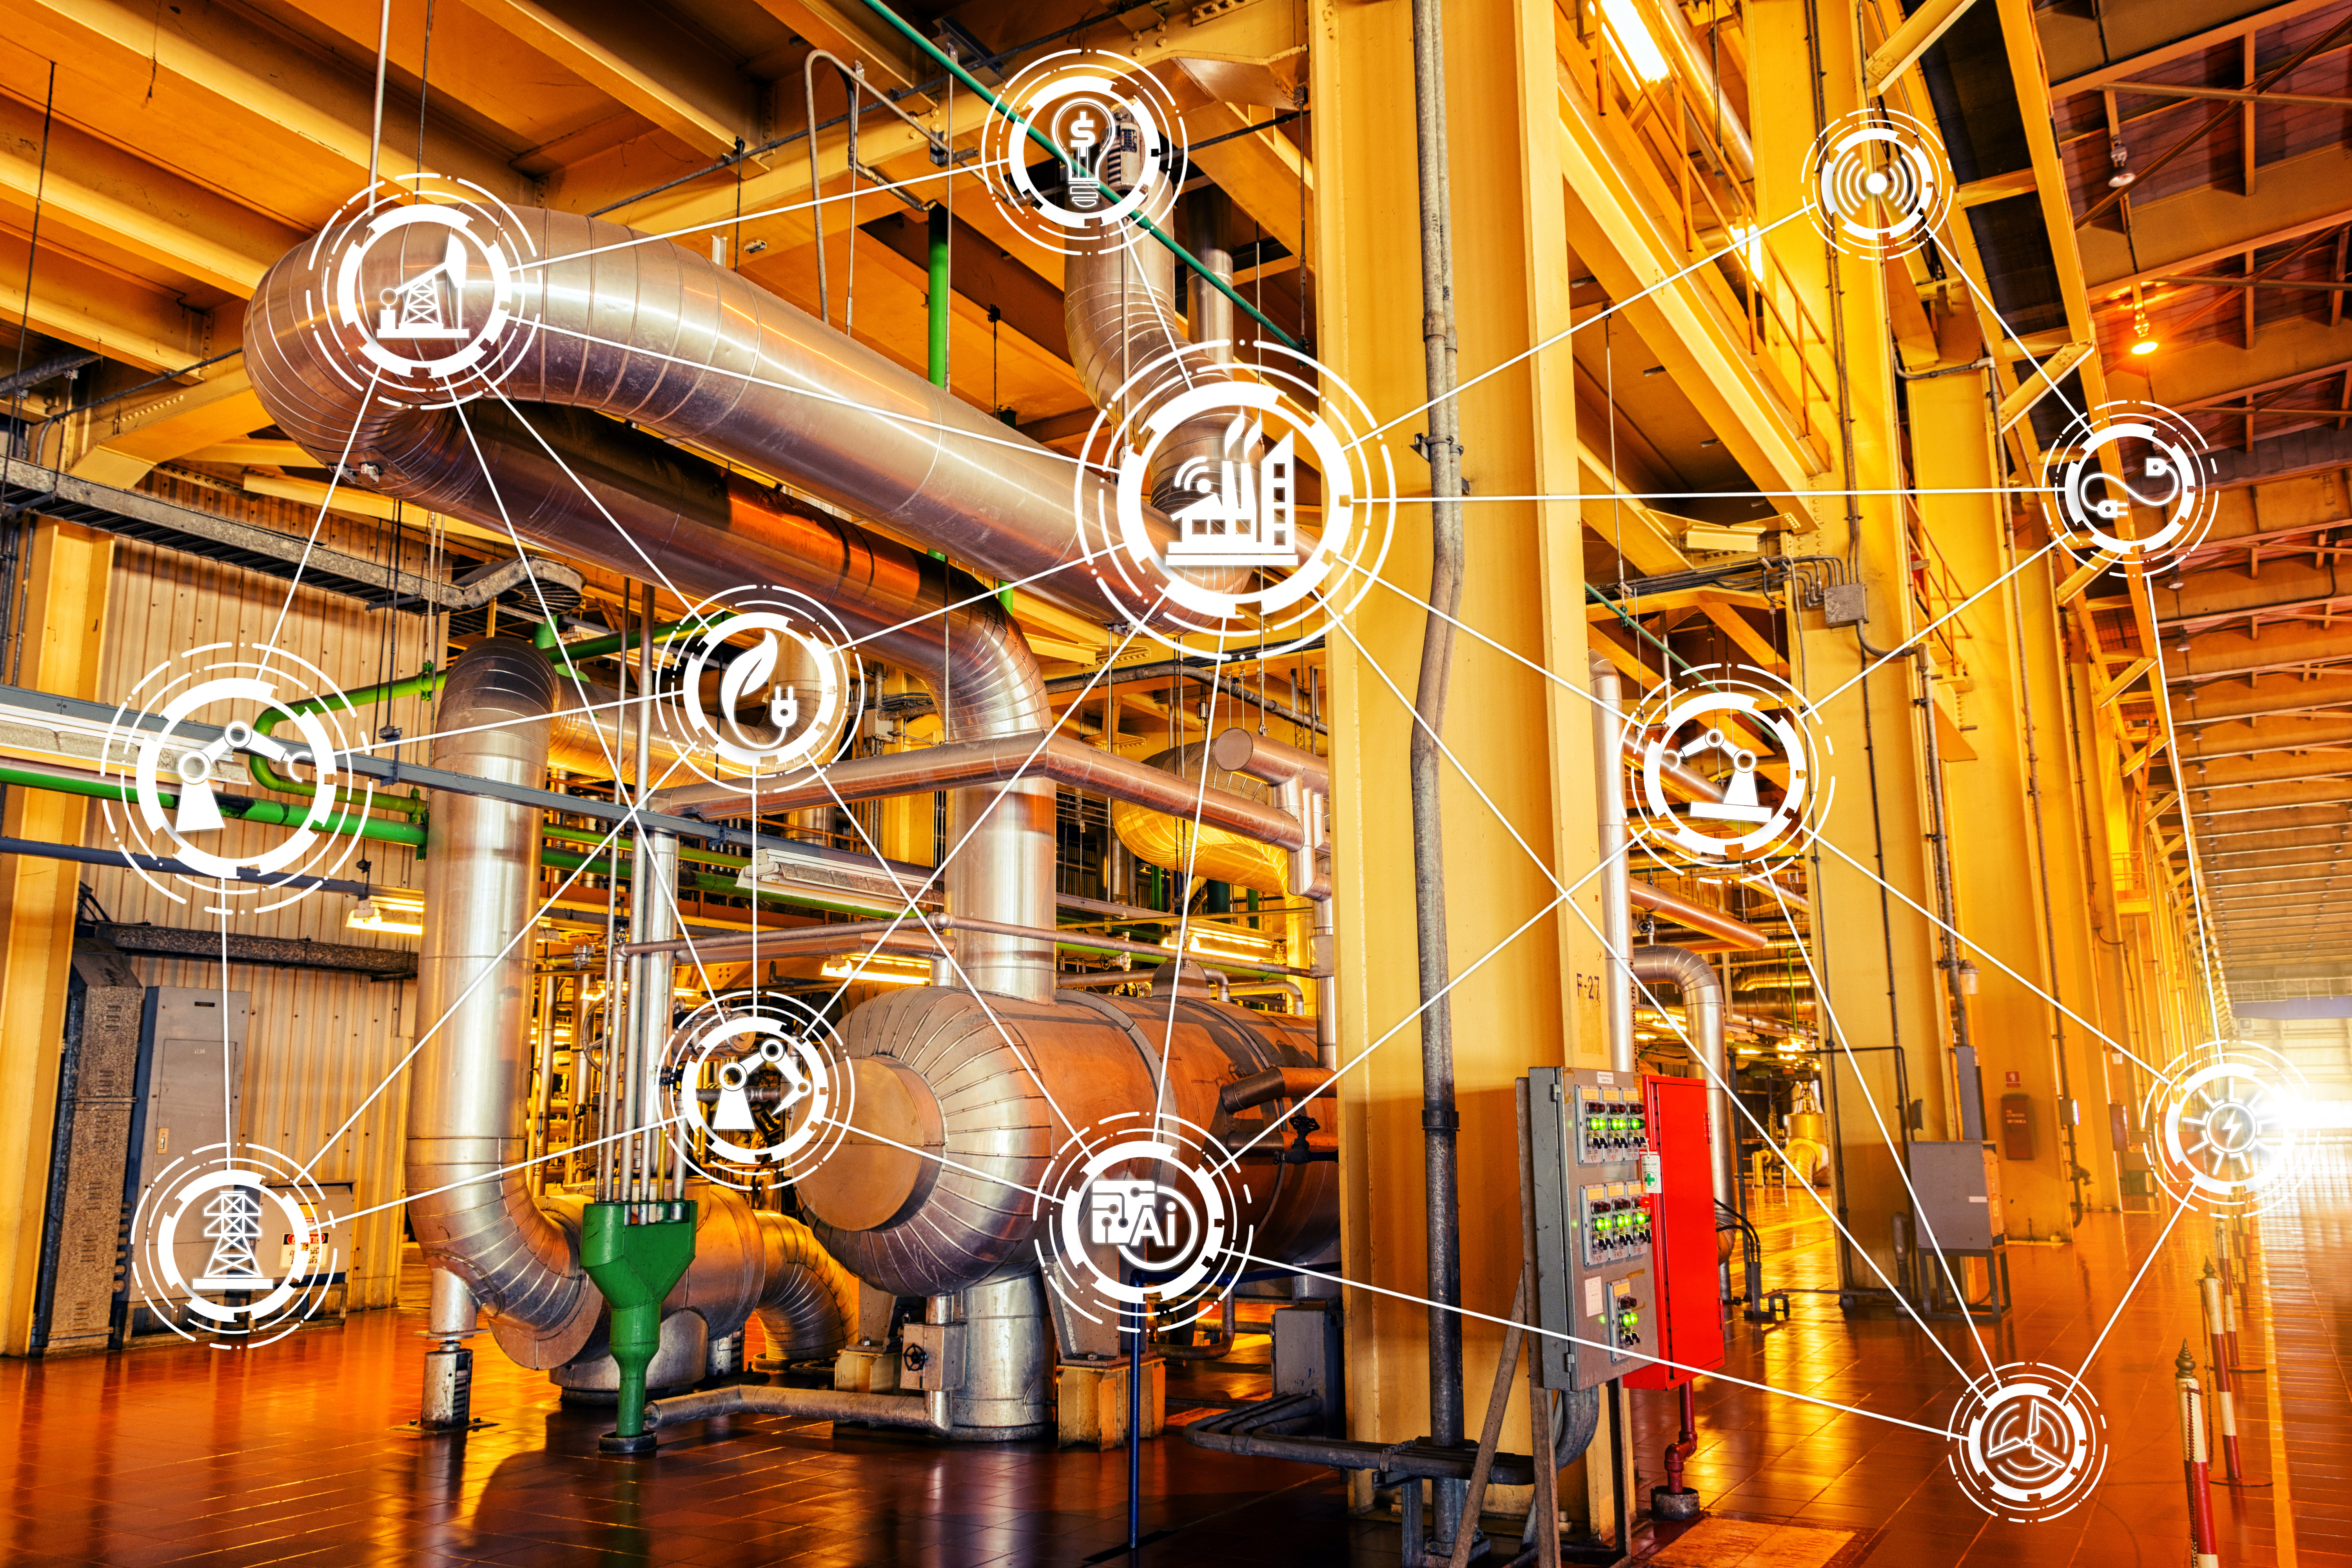 IIoT concept factory condition monitoring